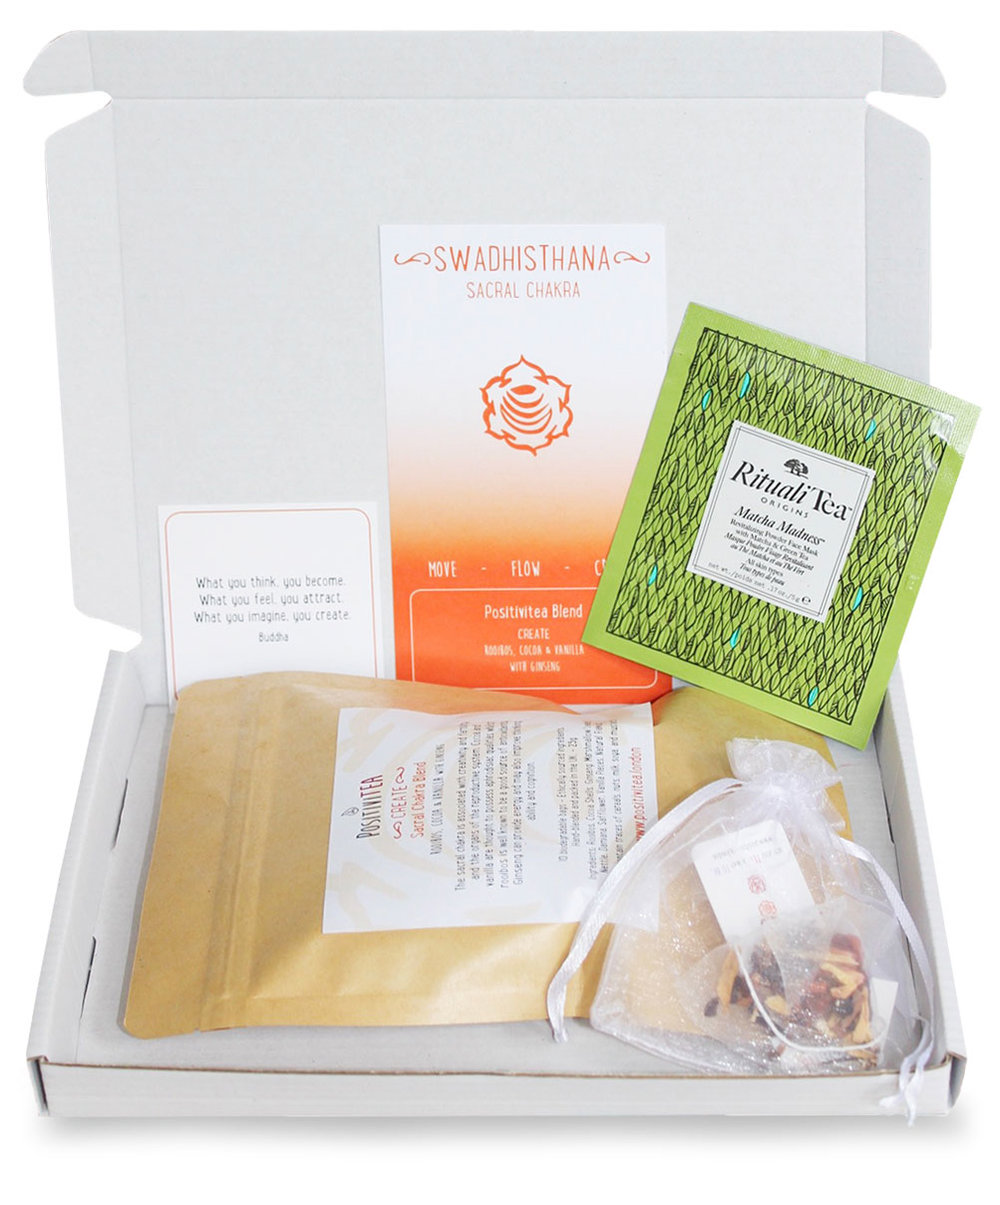 Buy a Tea Subscription - The gift that gives all year round!